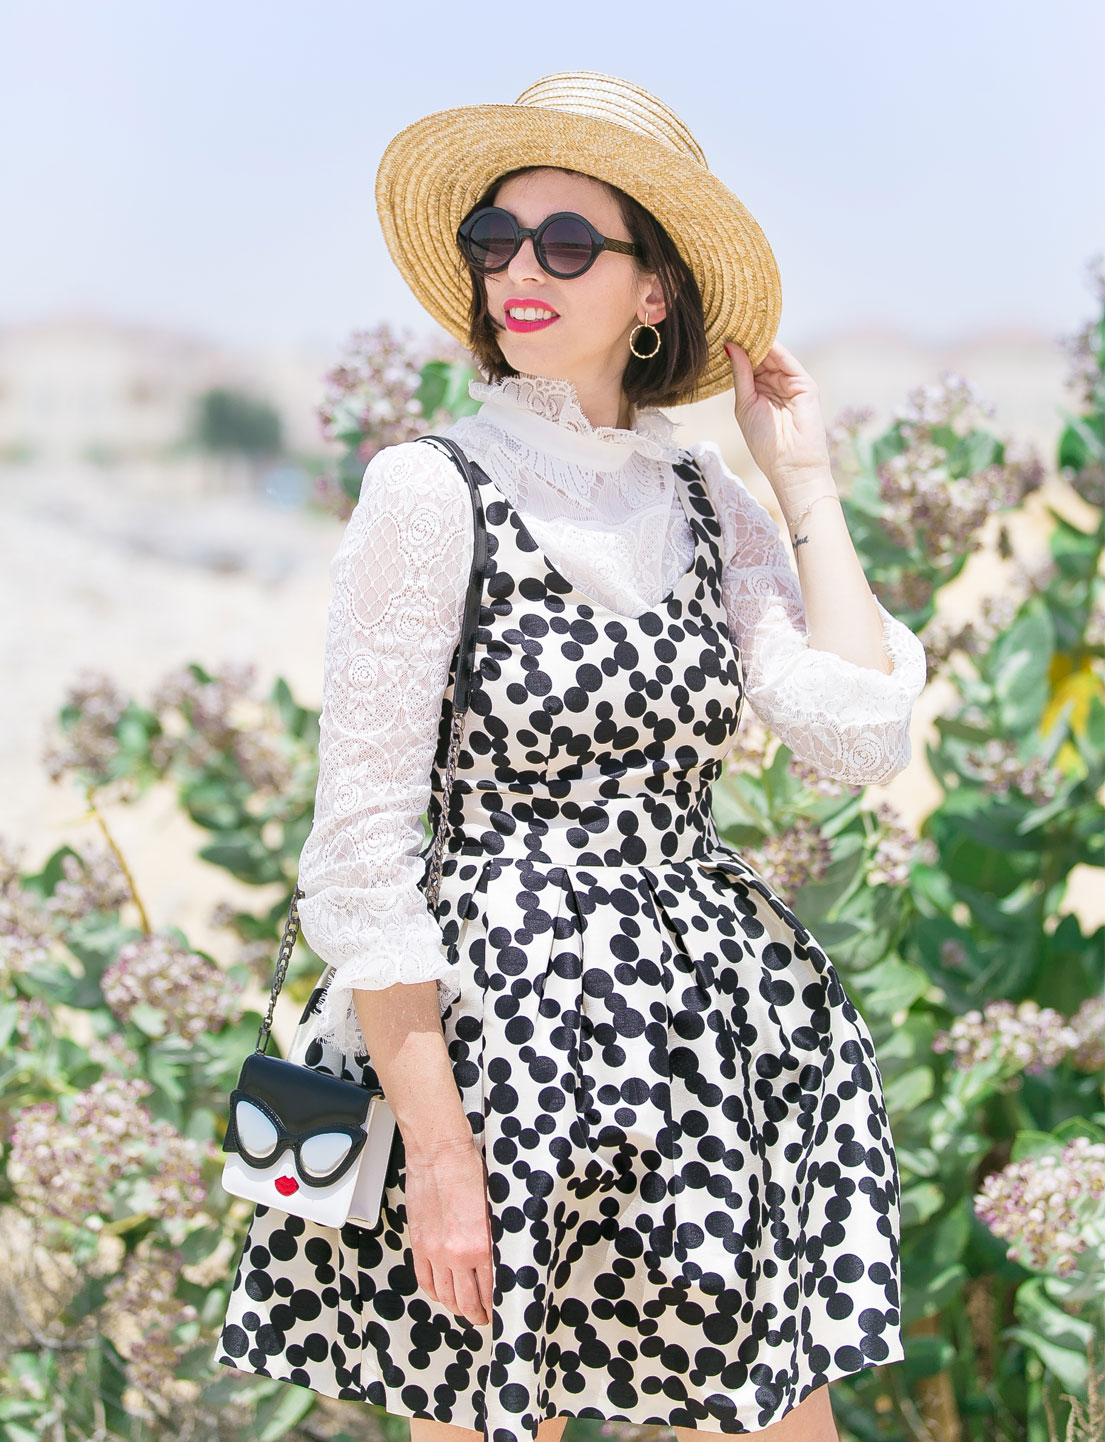 Polka Dot Dress + Pearl Sandals